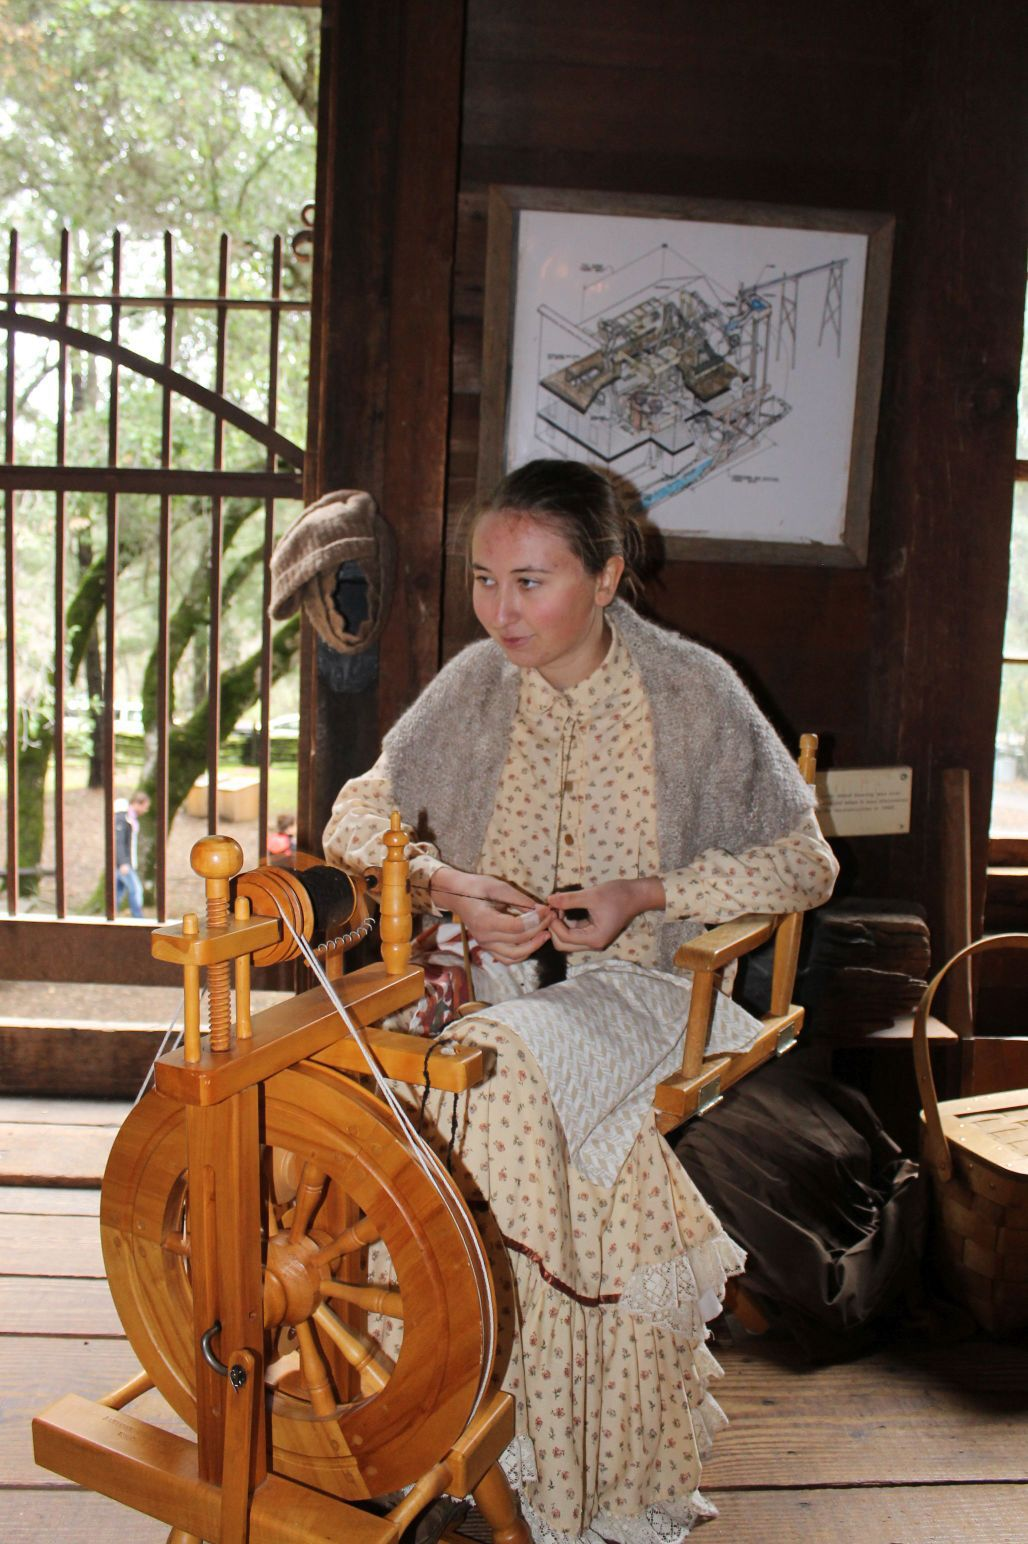 Spinning at the Bale Grist Mill